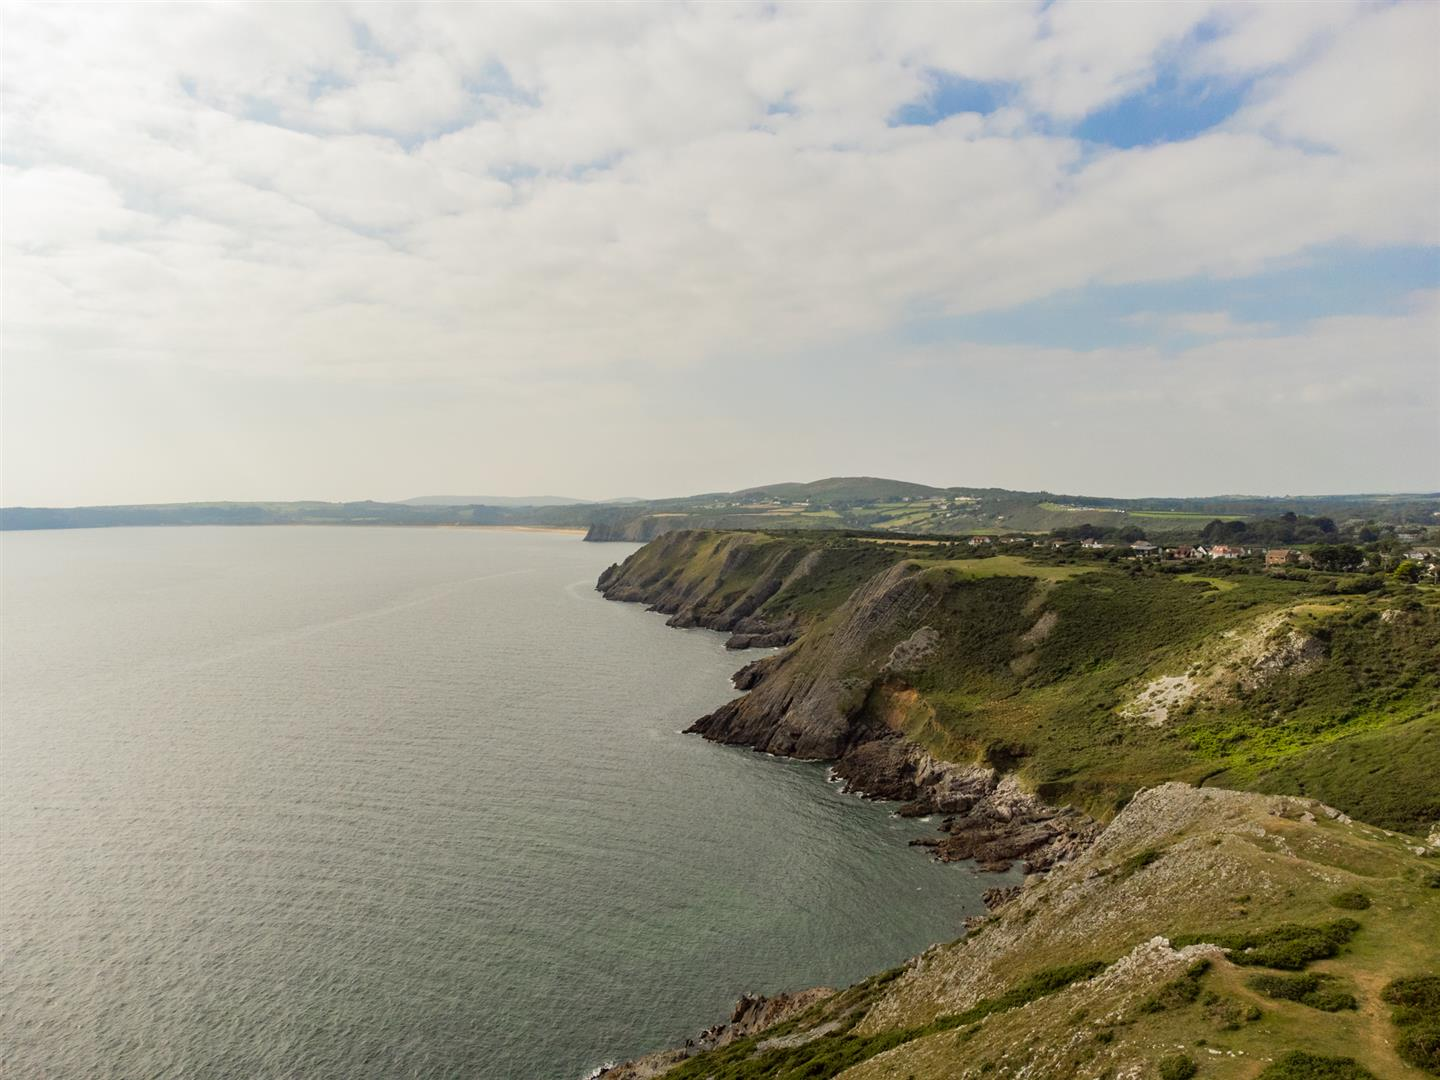 East Cliff, Southgate, Swansea